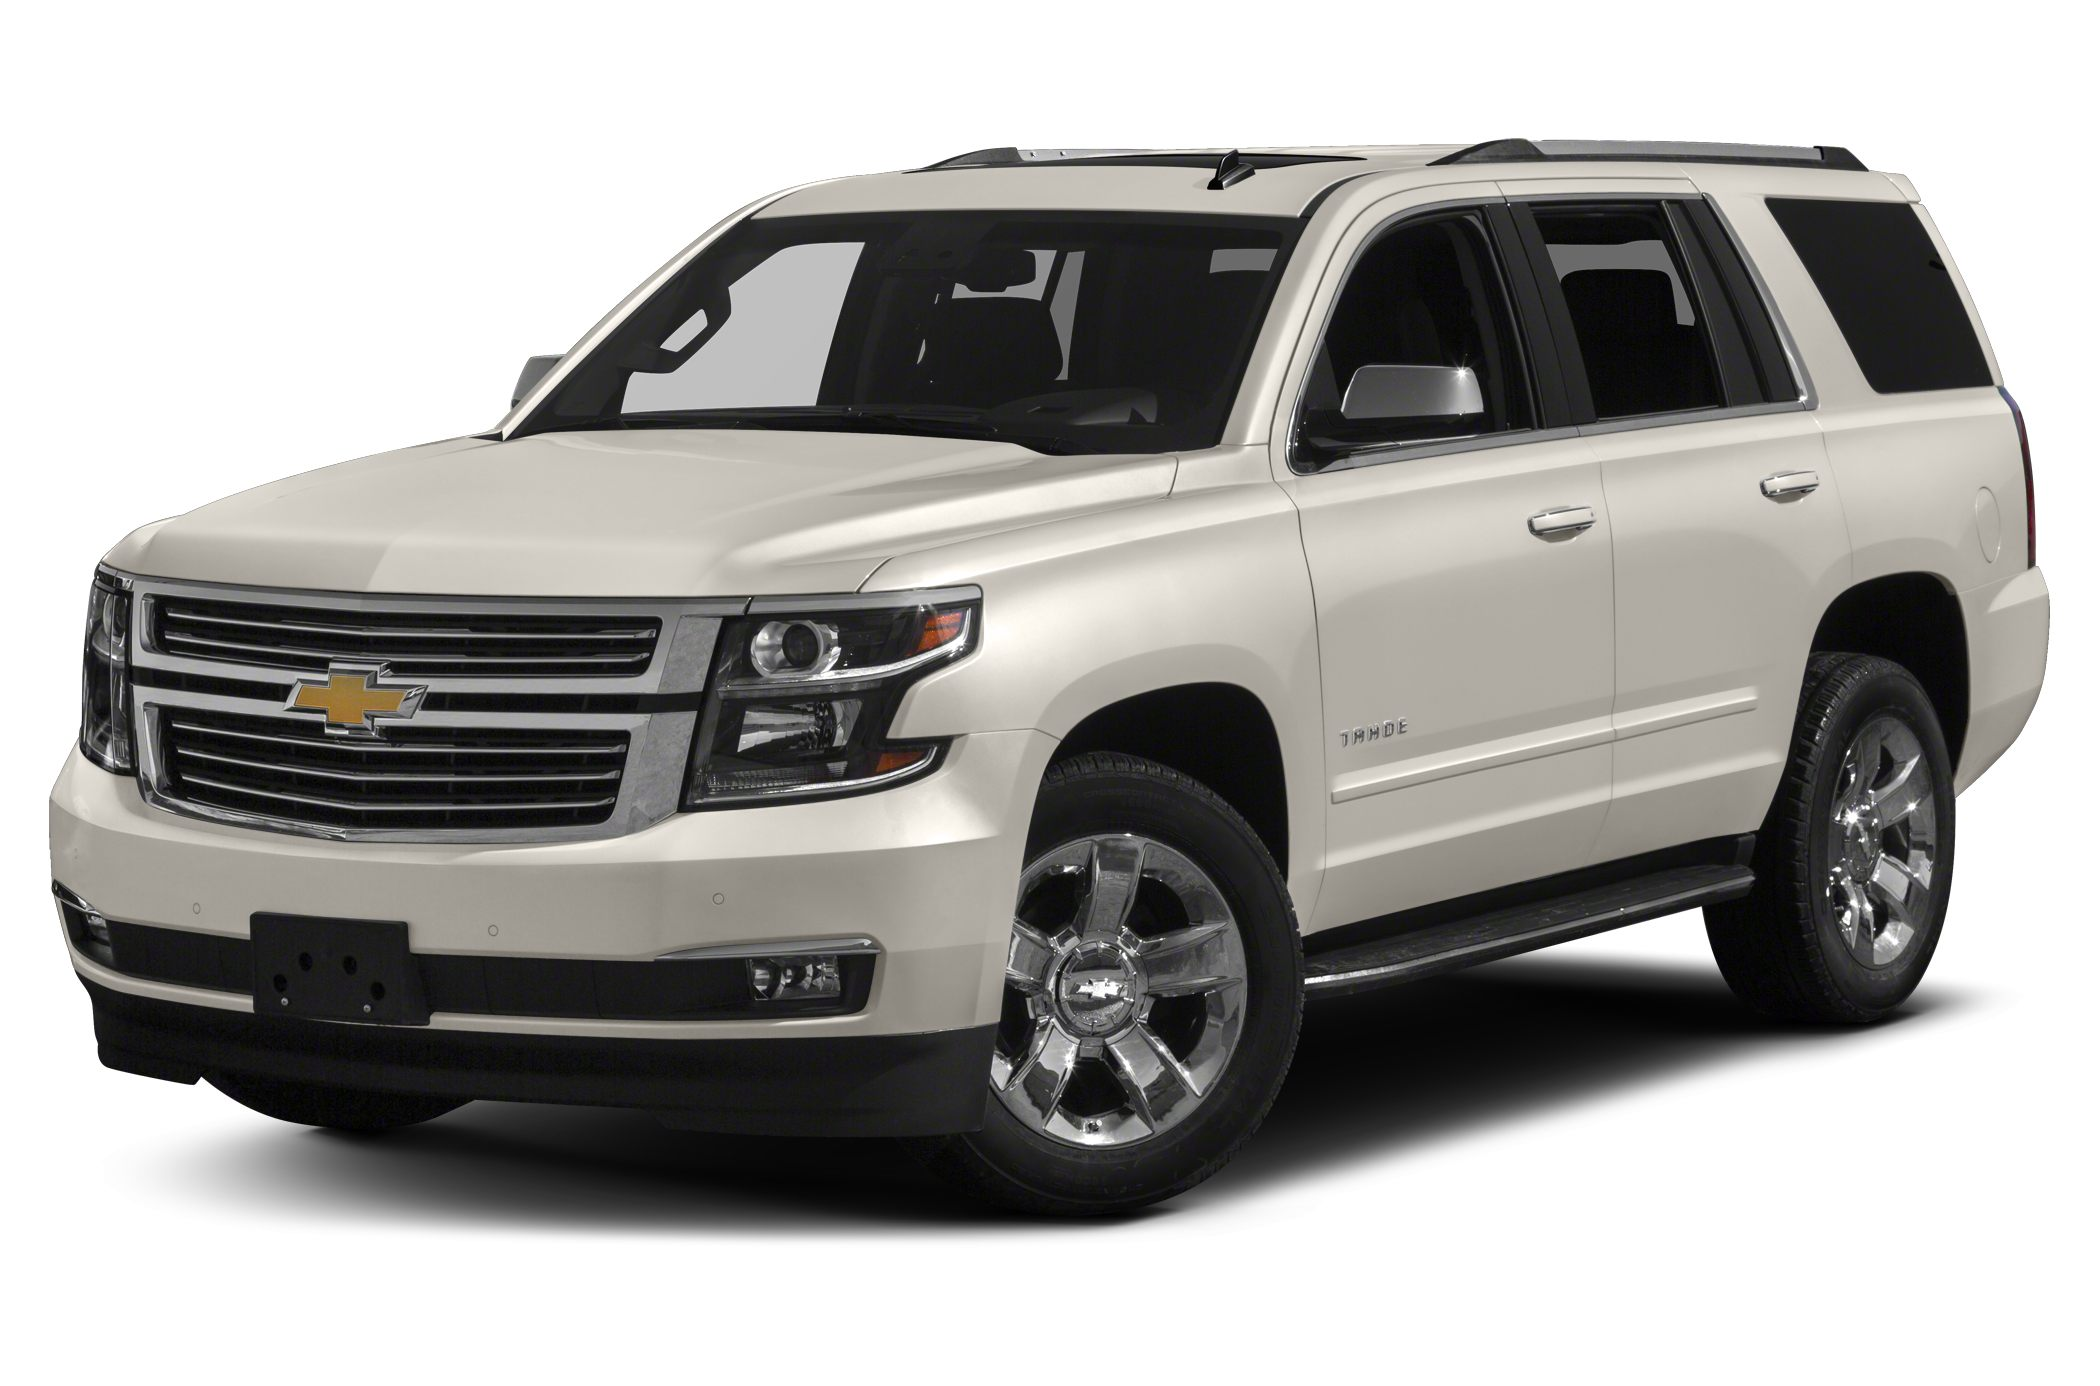 Tahoe Lease Deals >> See 2018 Chevrolet Tahoe Color Options - CarsDirect